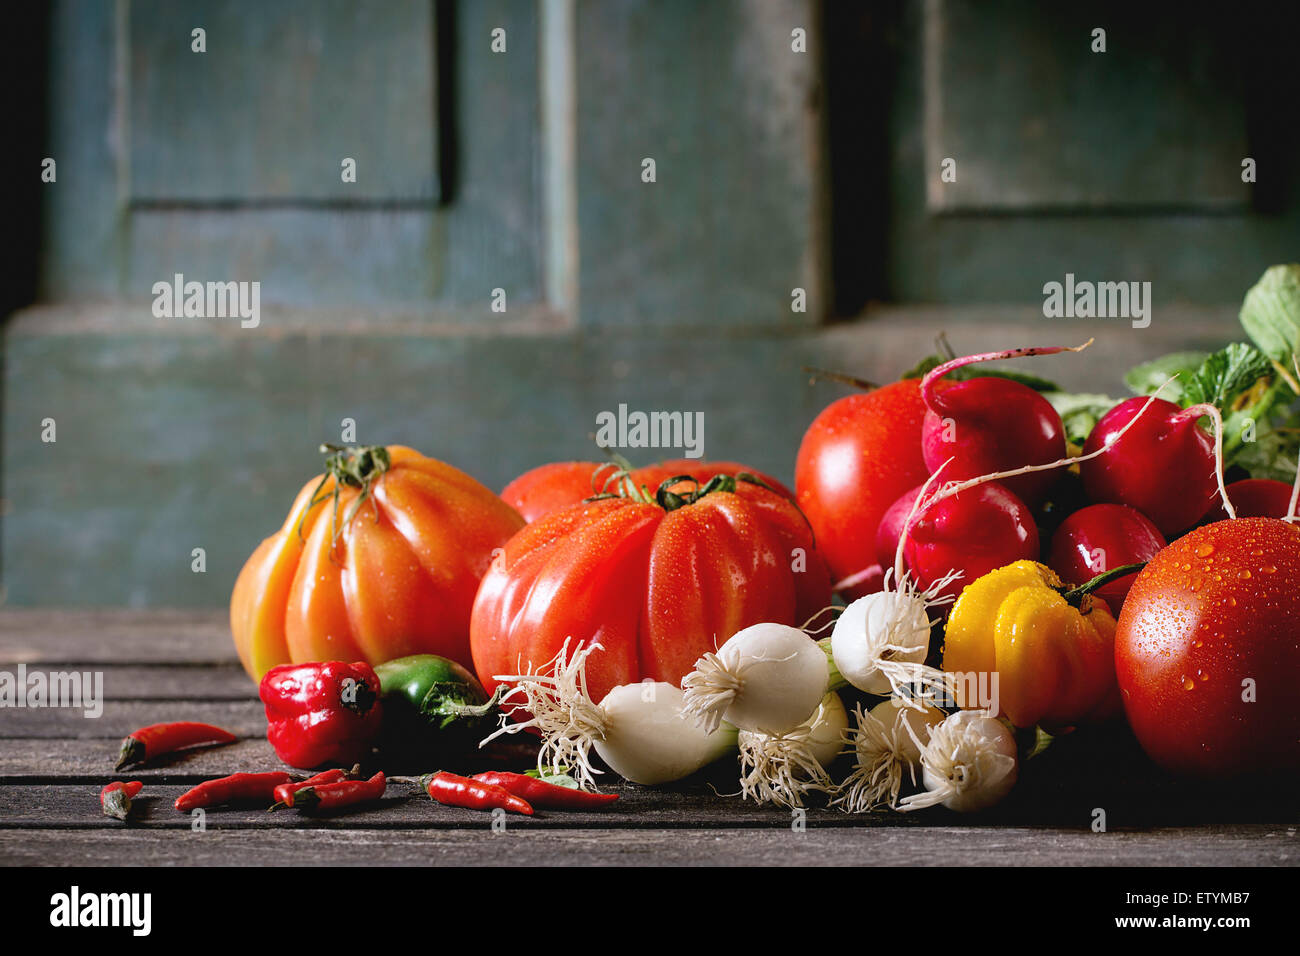 Heap of fresh ripe colorful vegetables tomatoes, chili peppers, green onion and bunch of radish over old wooden - Stock Image